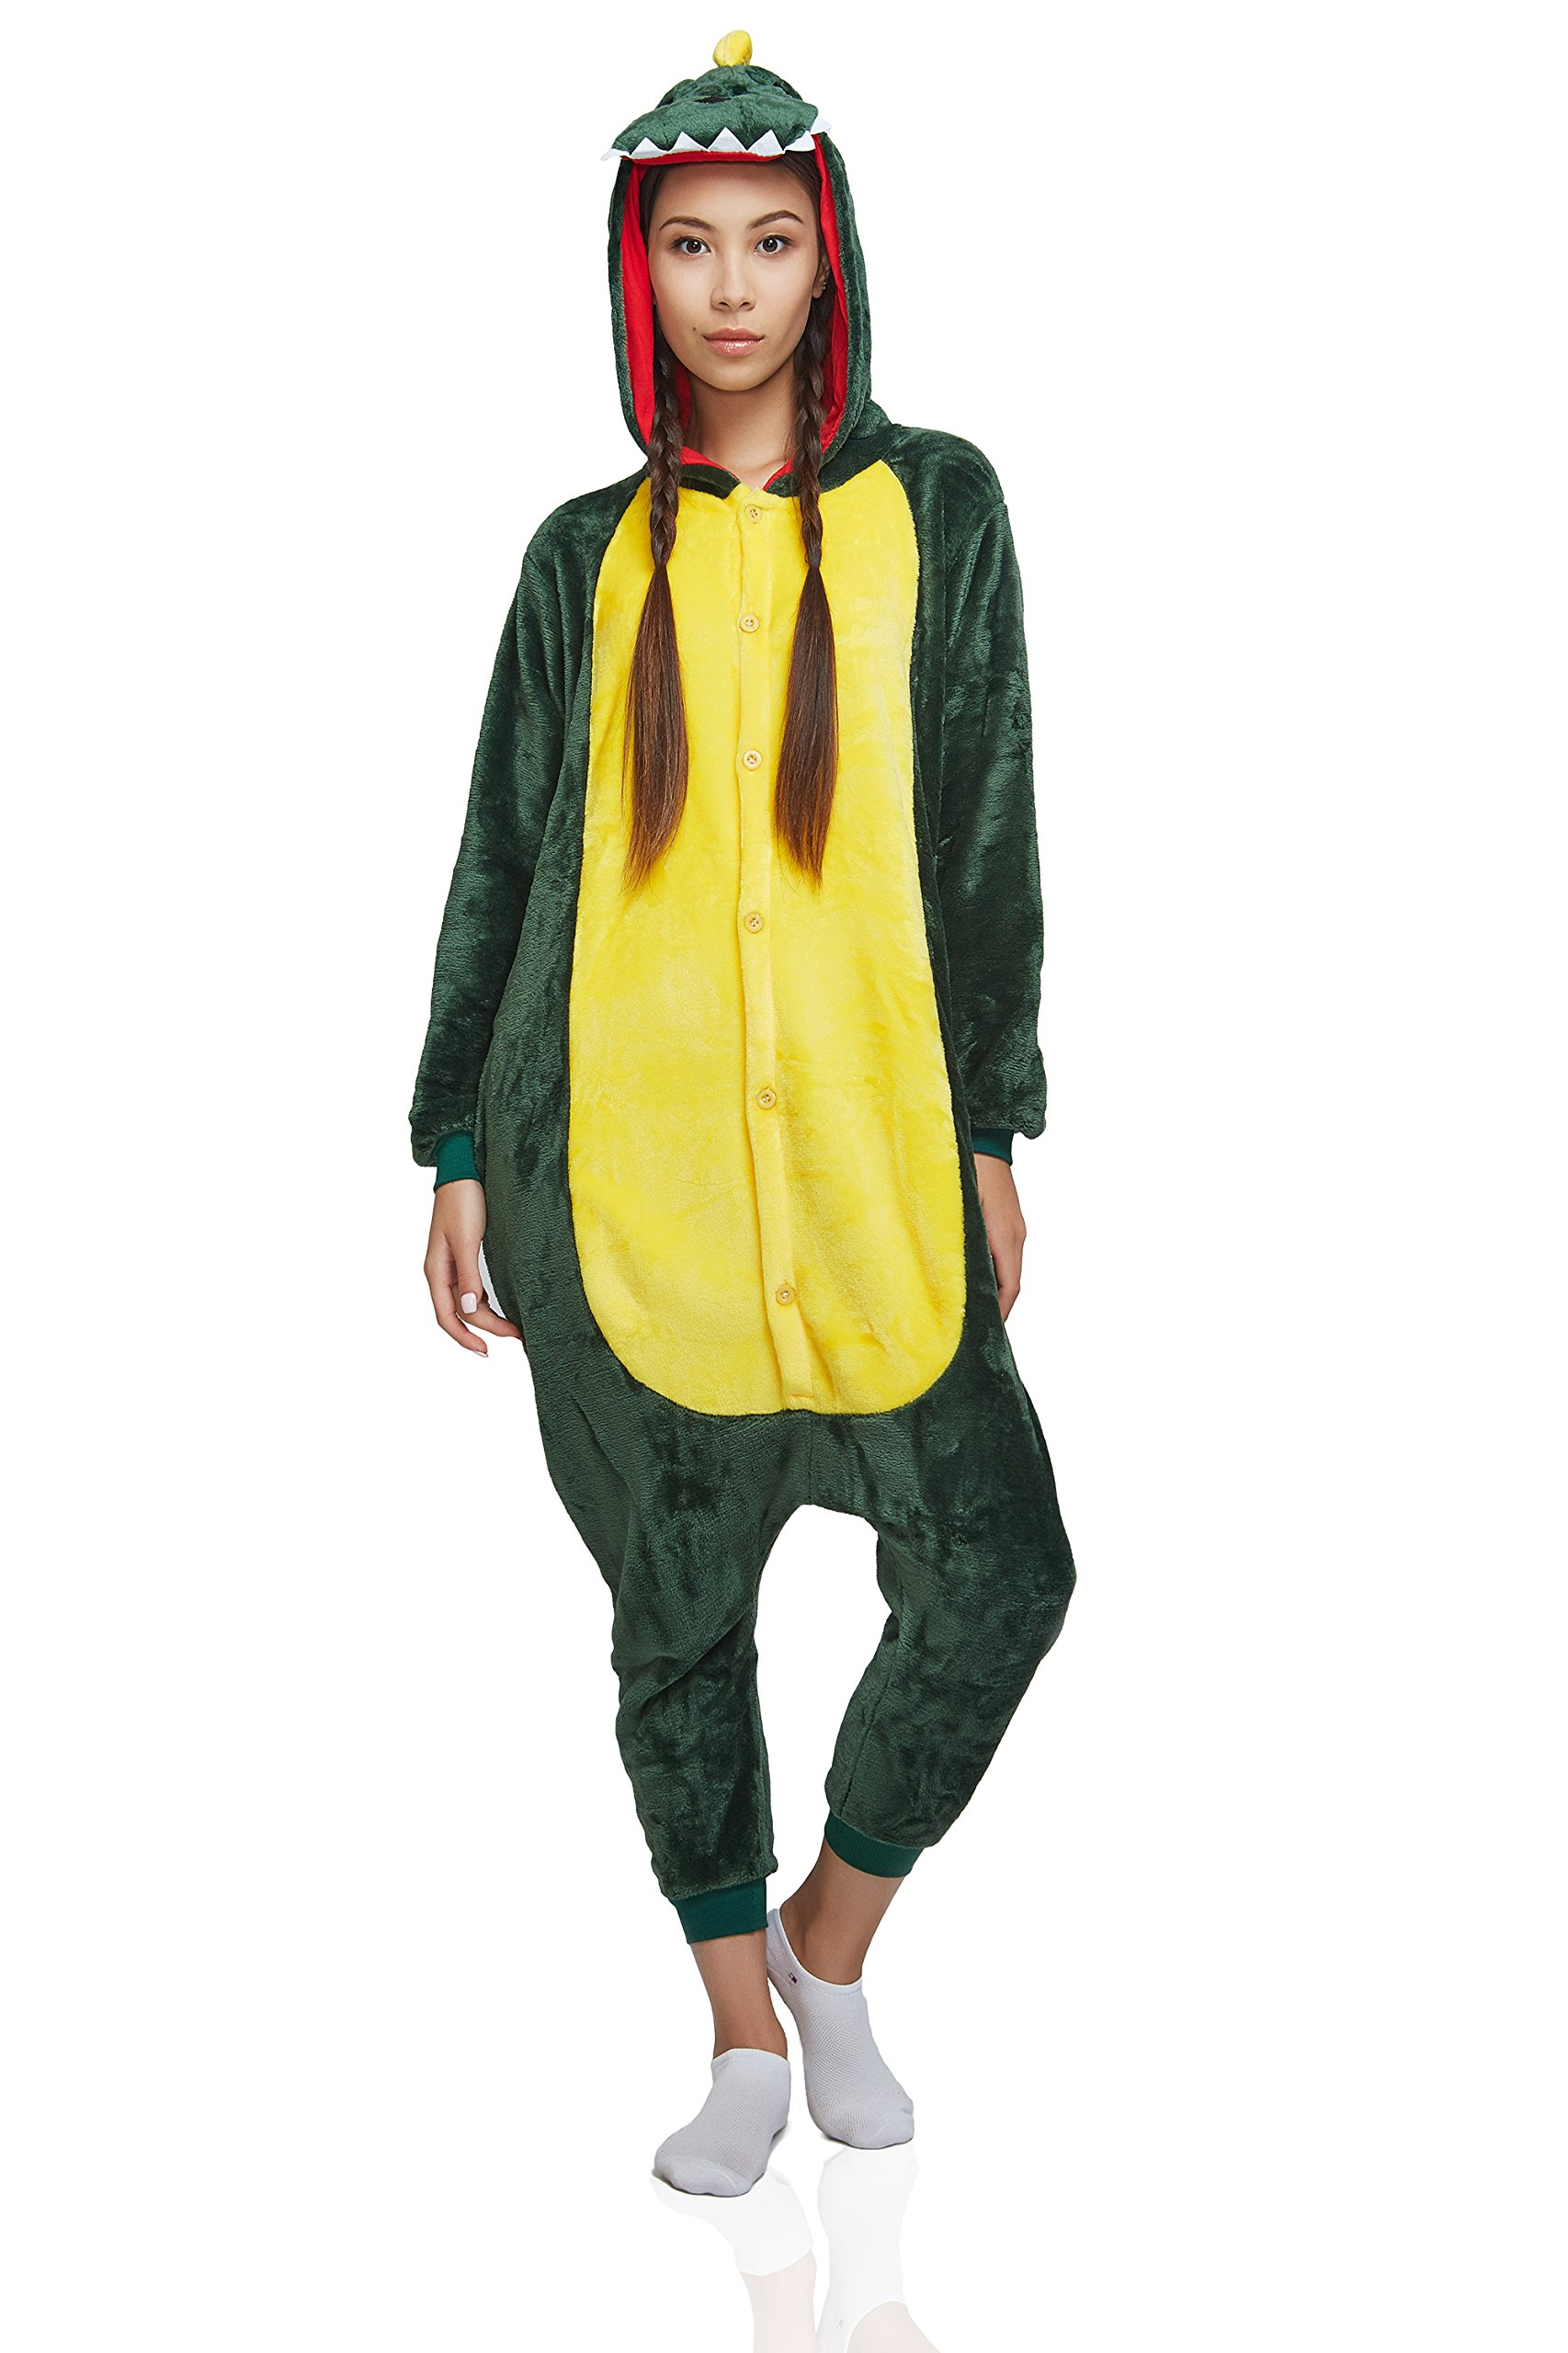 Adult Dragon Kigurumi Animal Onesie Pajamas Plush Onsie One Piece Cosplay Costume (Small, Green) by Nothing But Love (Image #1)